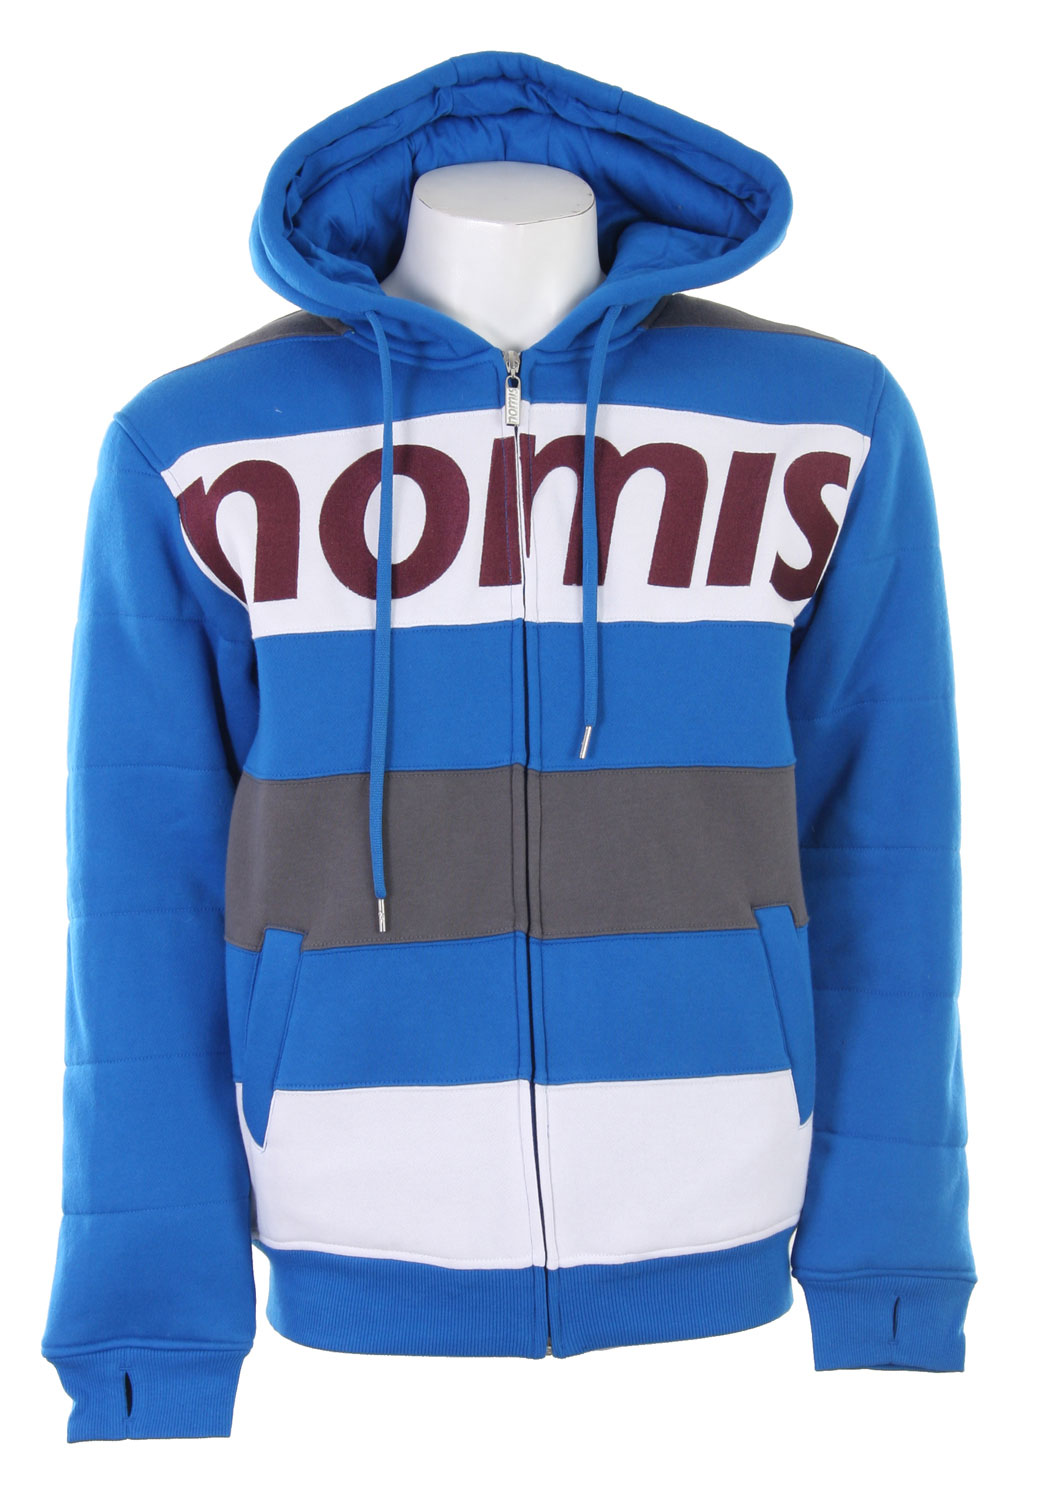 Looking for something that will keep you warm underneath your winter jacket? Sometimes the weather is just completely ruthless and you need to add some layers to your winter set up. Well a great way to add a ton of warmth to your outfit and still look great is the Nomis Tony II Hoodie. It's a quality made hoodie that has some weight to it, so it has the ability to keep you warm. The design is also great, it's a simple horizontal stripe design that gives it a slimming effect. The Nomis logo across the chest really brings this whole hoodie all together and gives it an all around great look.Key Features of the Nomis Tony II Hoodie Charcoal: 80% Cotton/20% Poly - 270 gm - $35.95